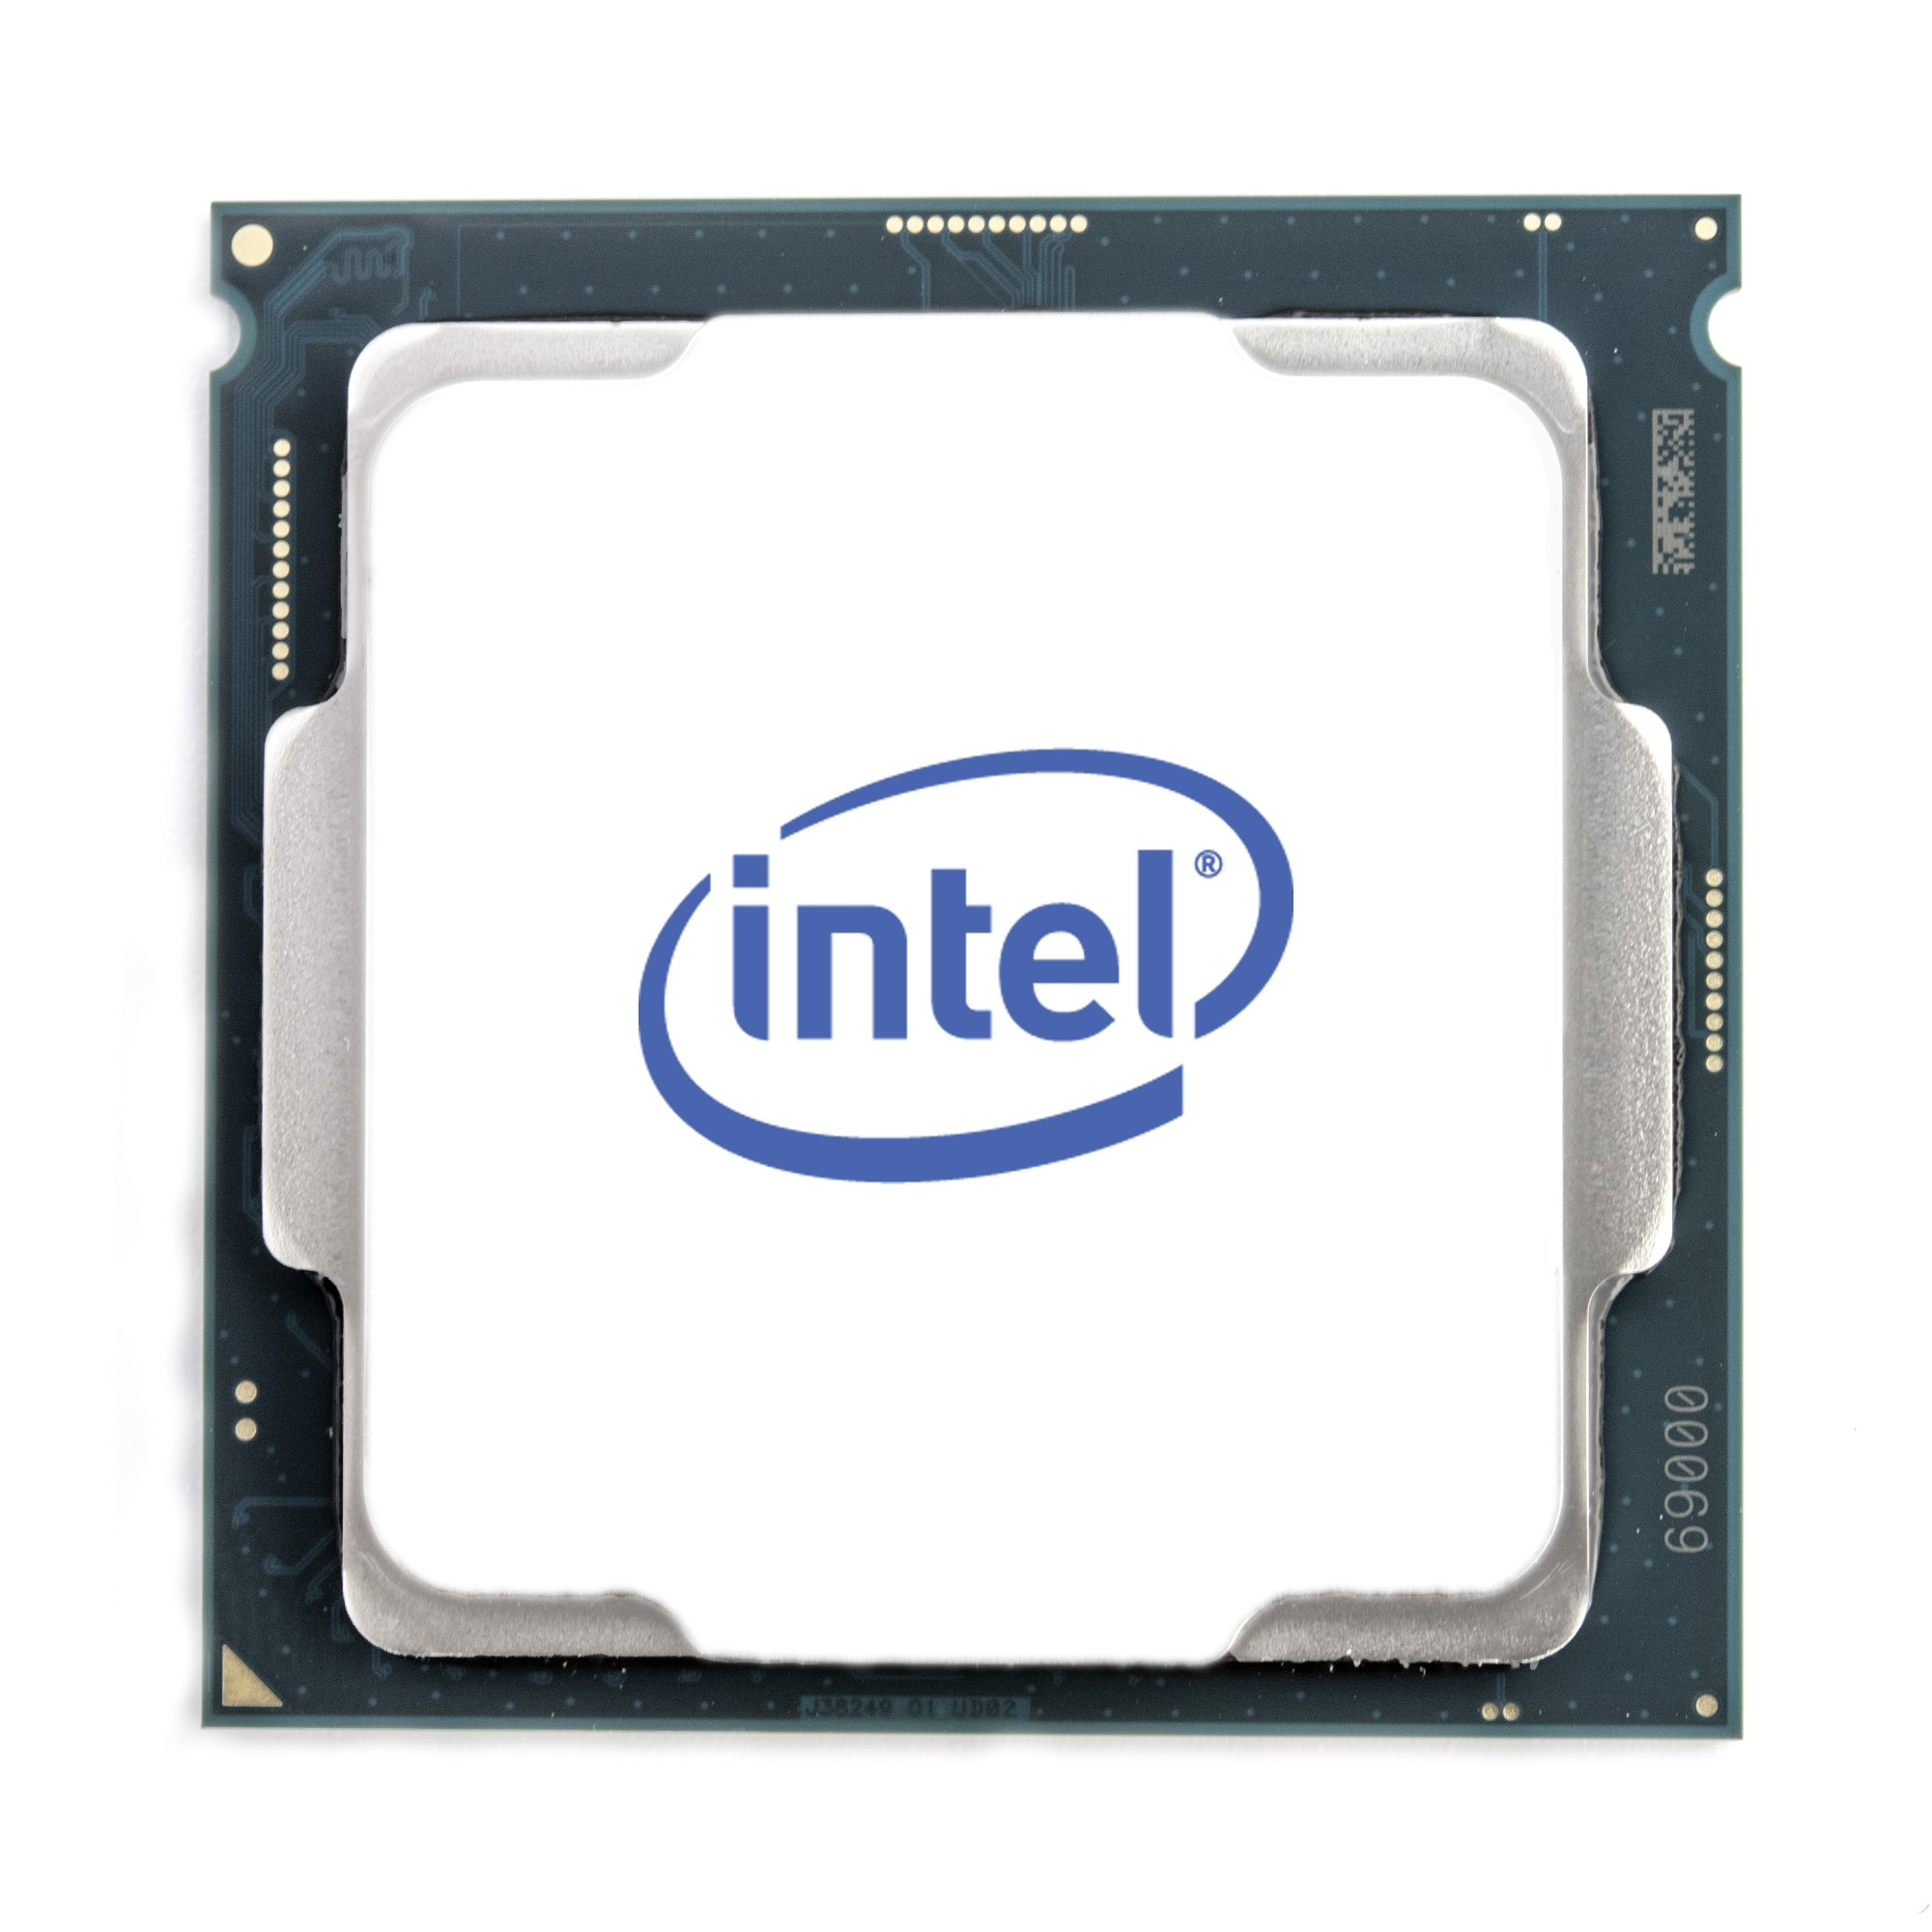 Intel Xeon W-2295 processor 3 GHz 24.75 MB